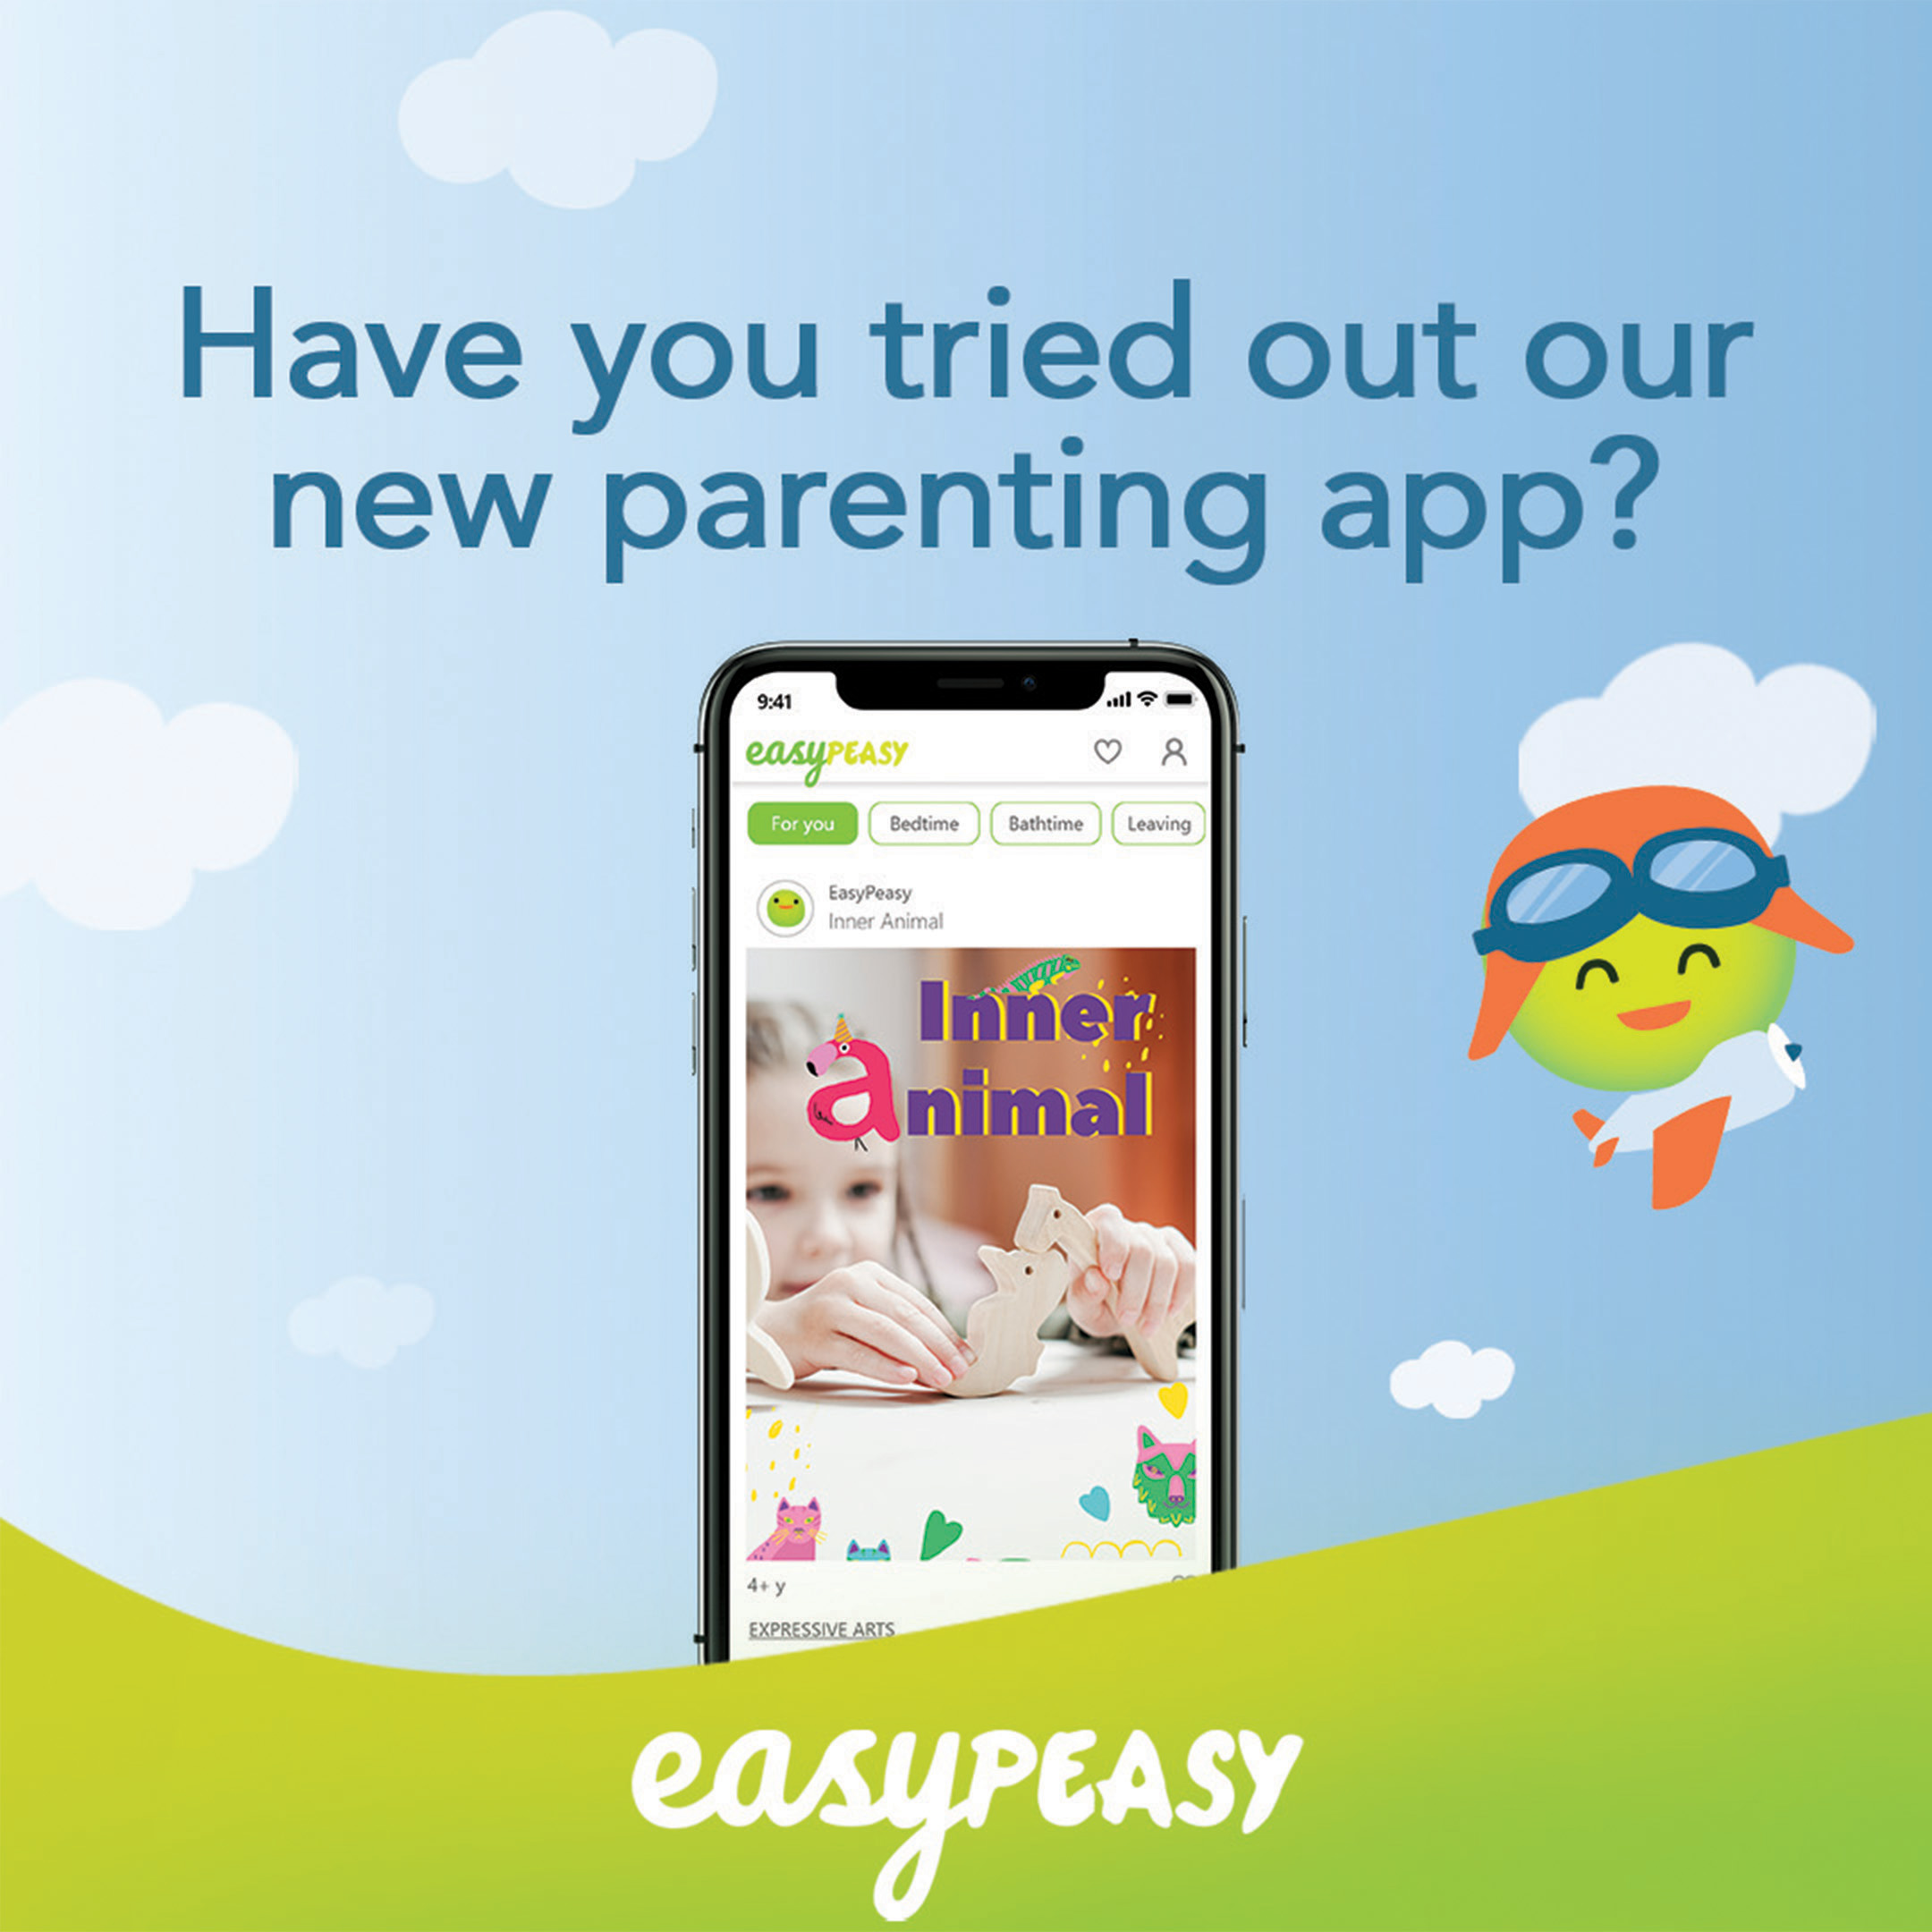 EasyPeasy mobile app displayed on a background with green hills, and blue sky inviting parents to give feedback on our iOS app